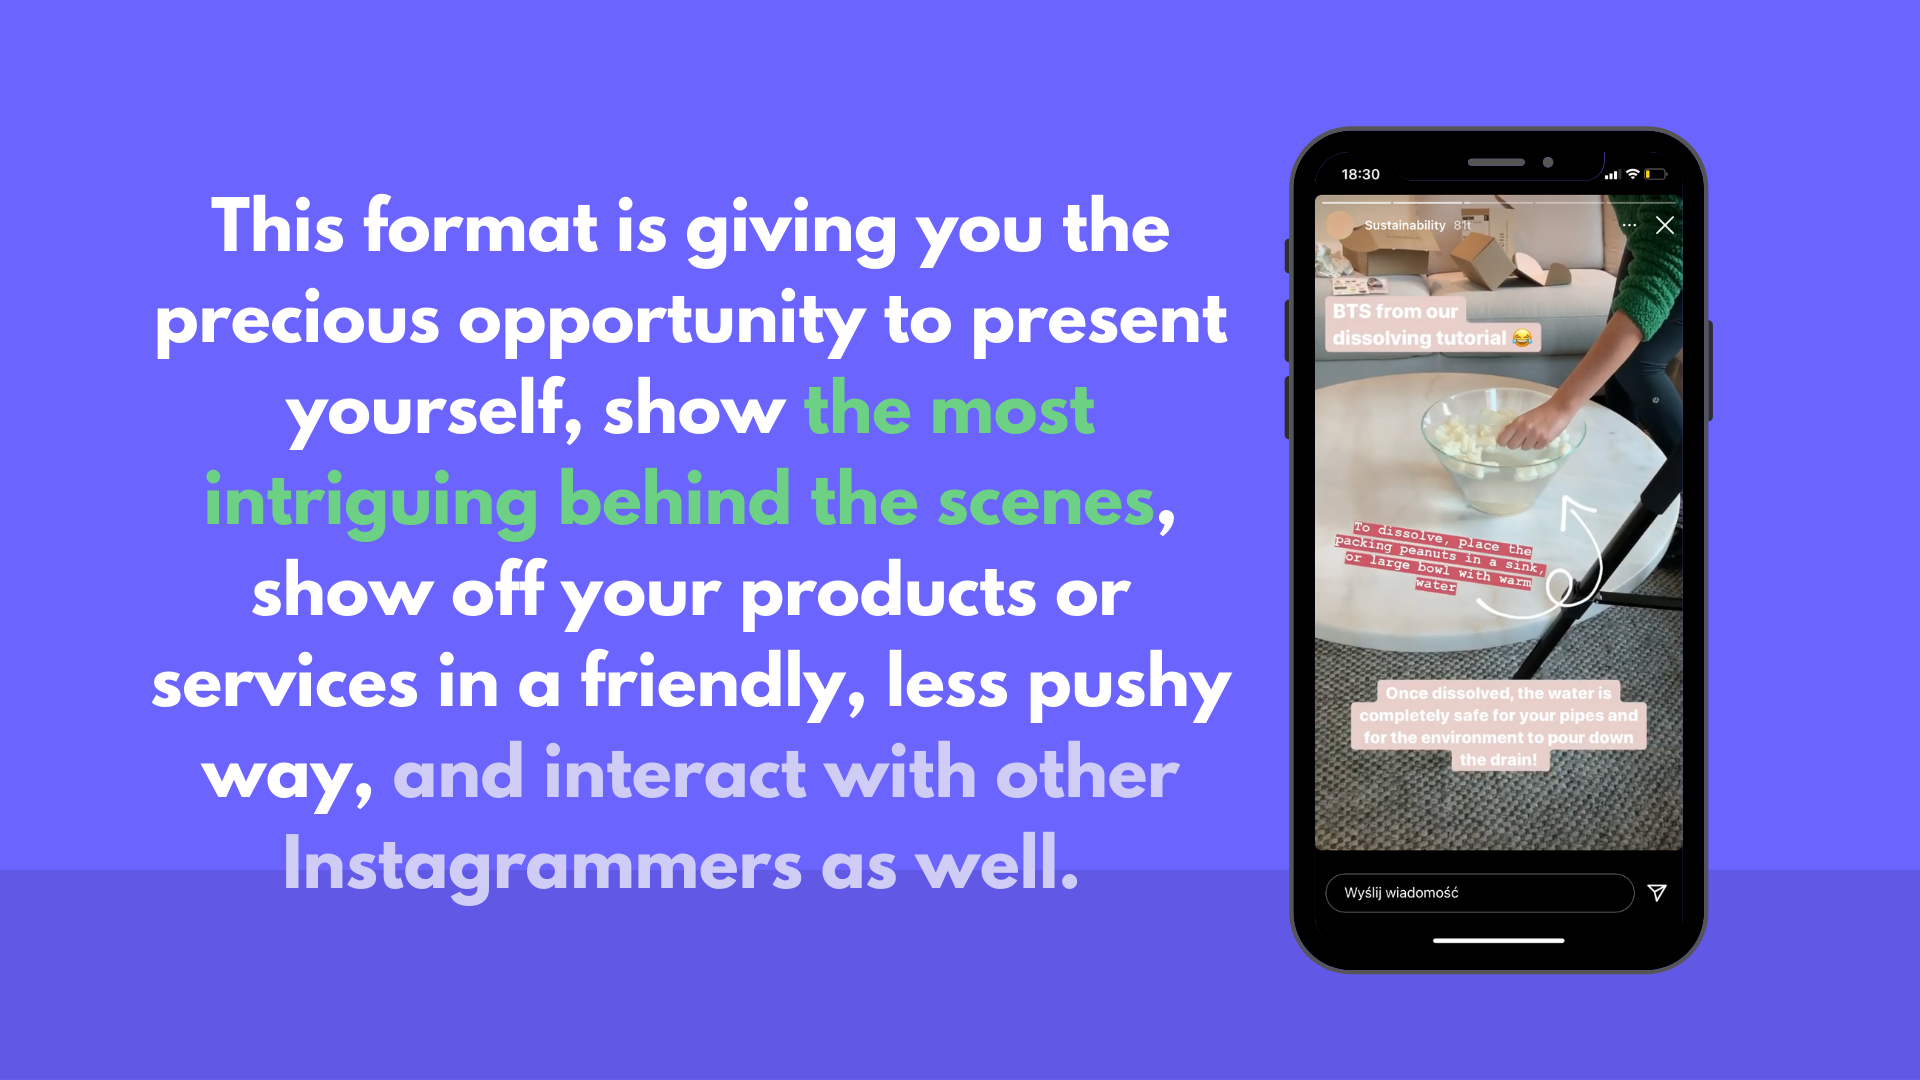 instagram strategy that converts boost sales product or services